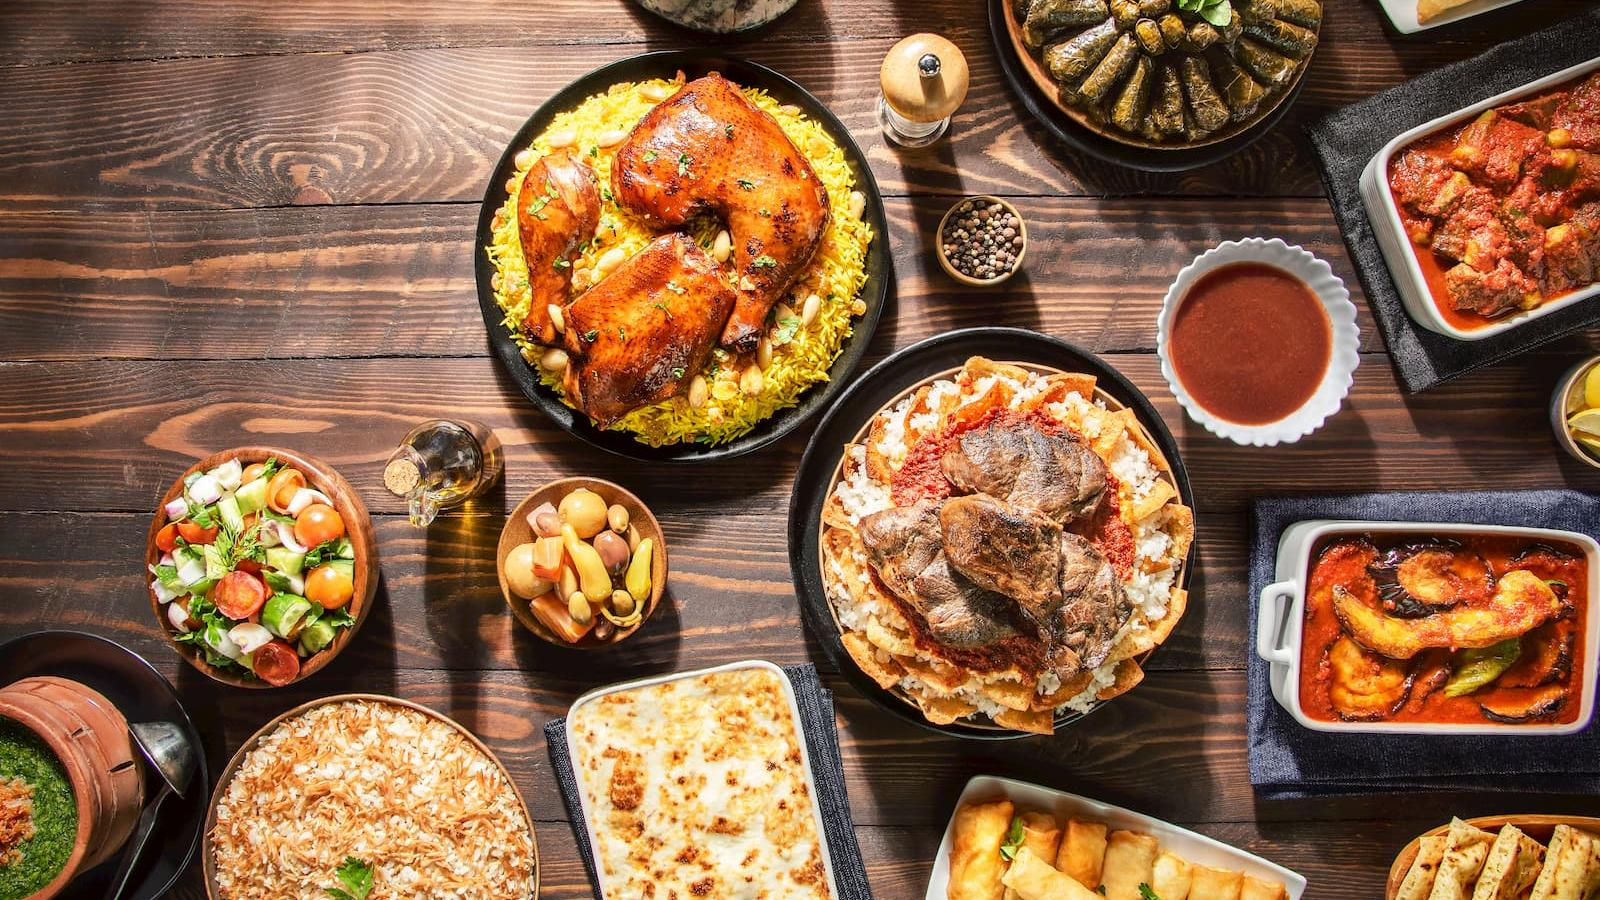 Indulge in a splendid Iftar experience at home with The Ritz Carlton